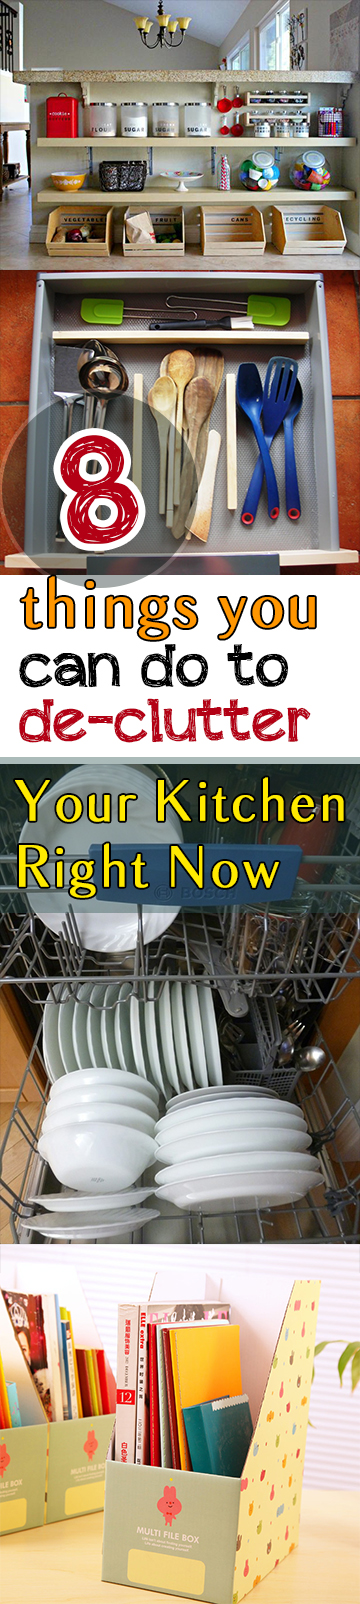 8 Things You Can Do to De-Clutter Your Kitchen Right Now